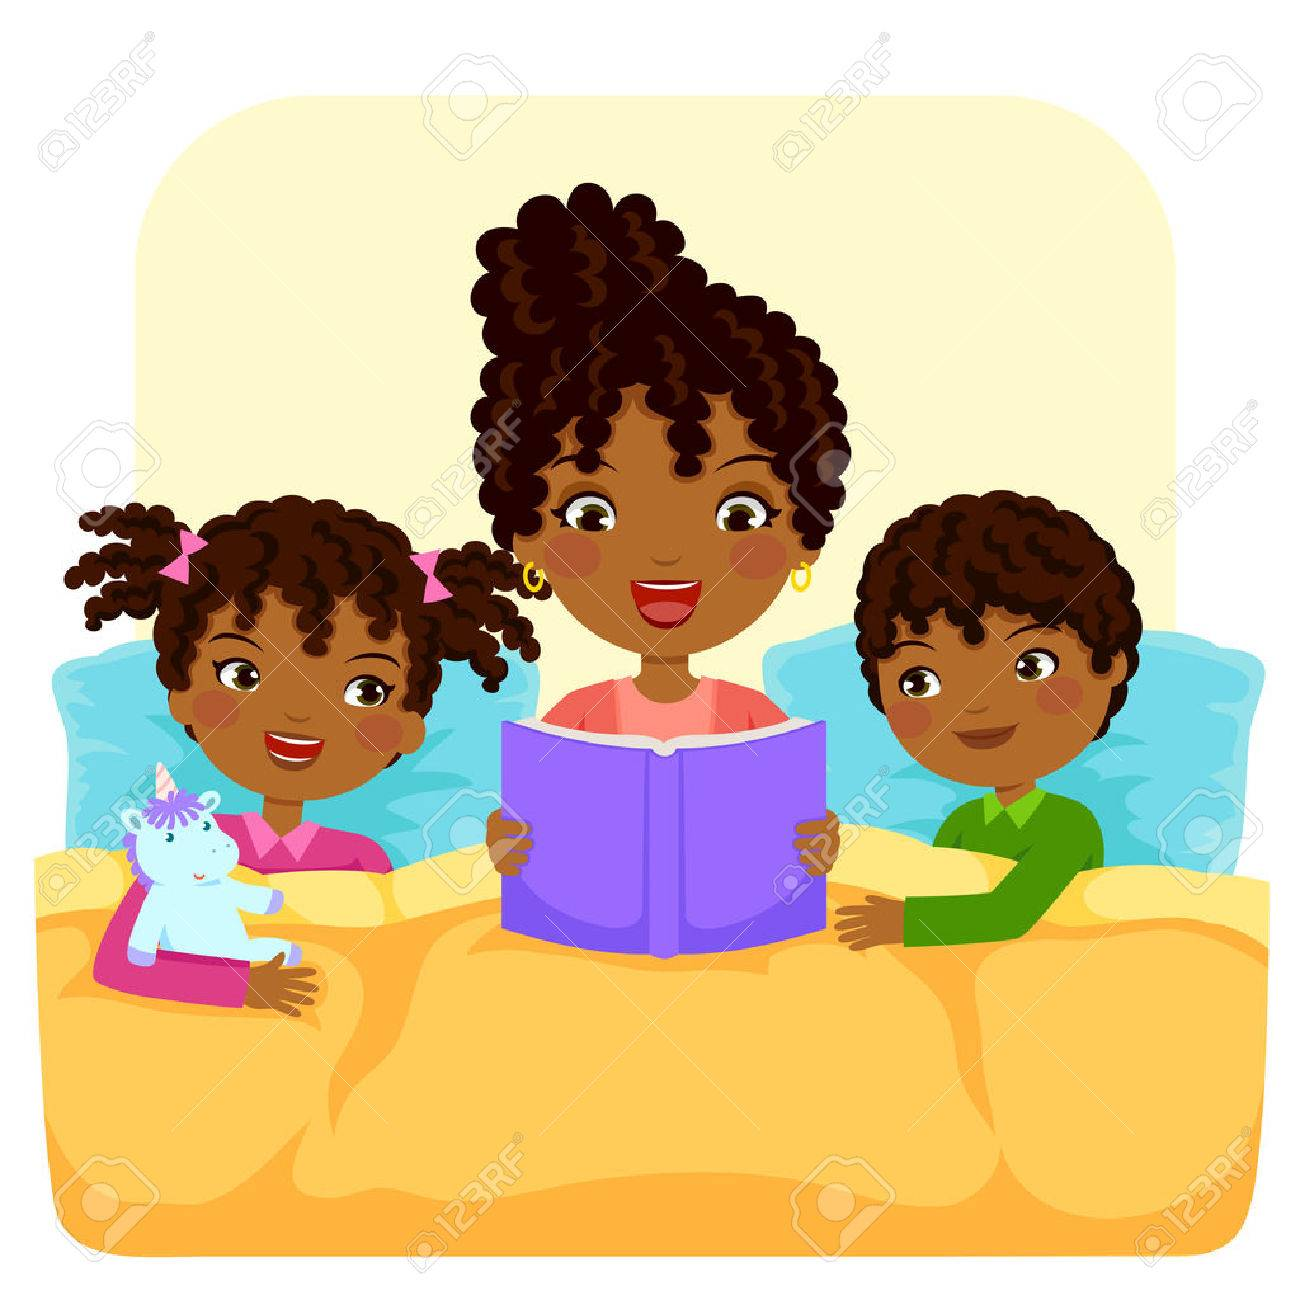 dark skinned woman reading bedtime story to children royalty free rh 123rf com bedtime clipart black and white bedtime routine clipart free